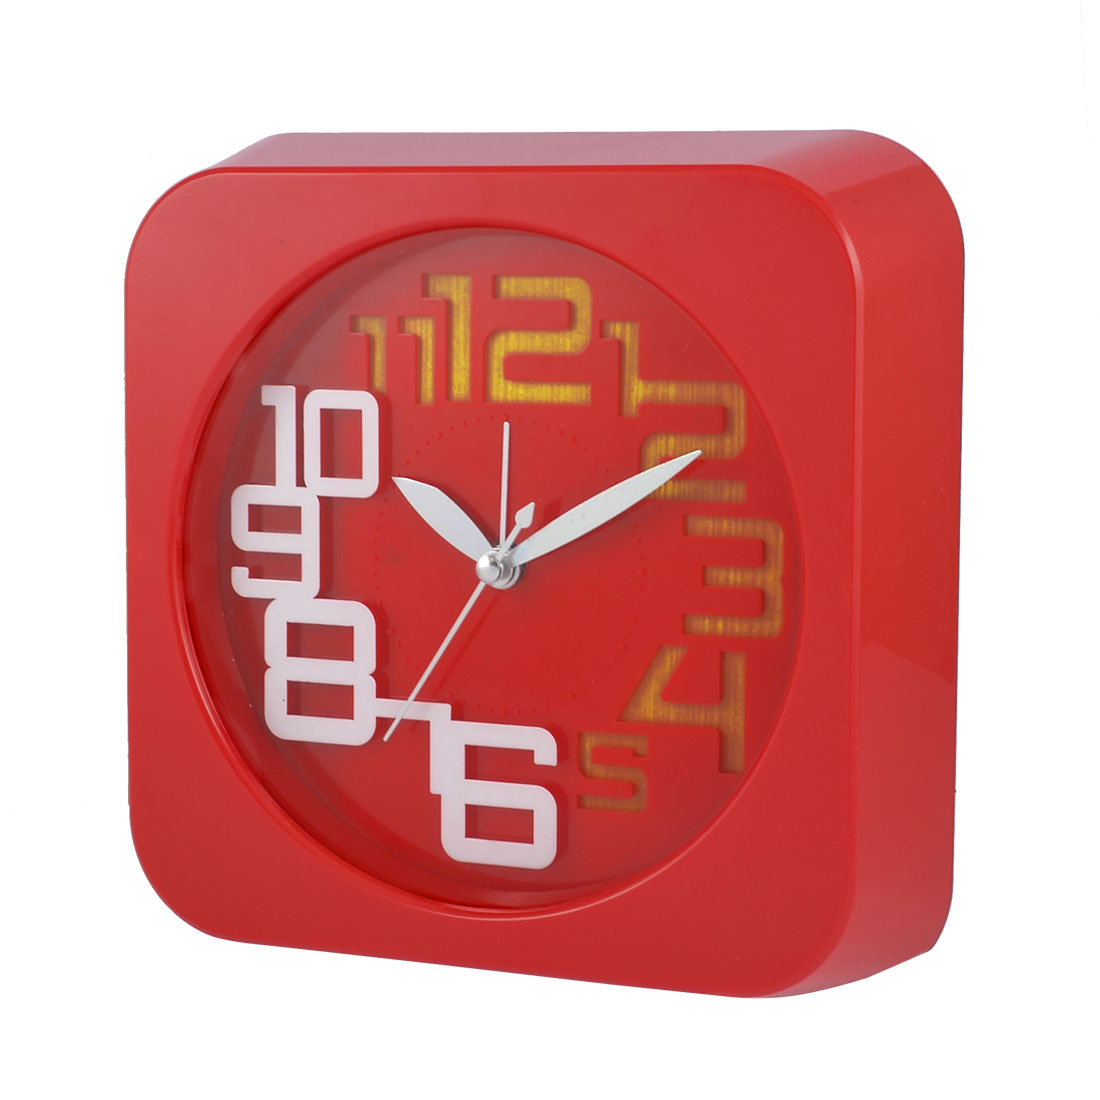 Hard Plastic Red Metal Hands Wall Alarm Clock for Bedroom